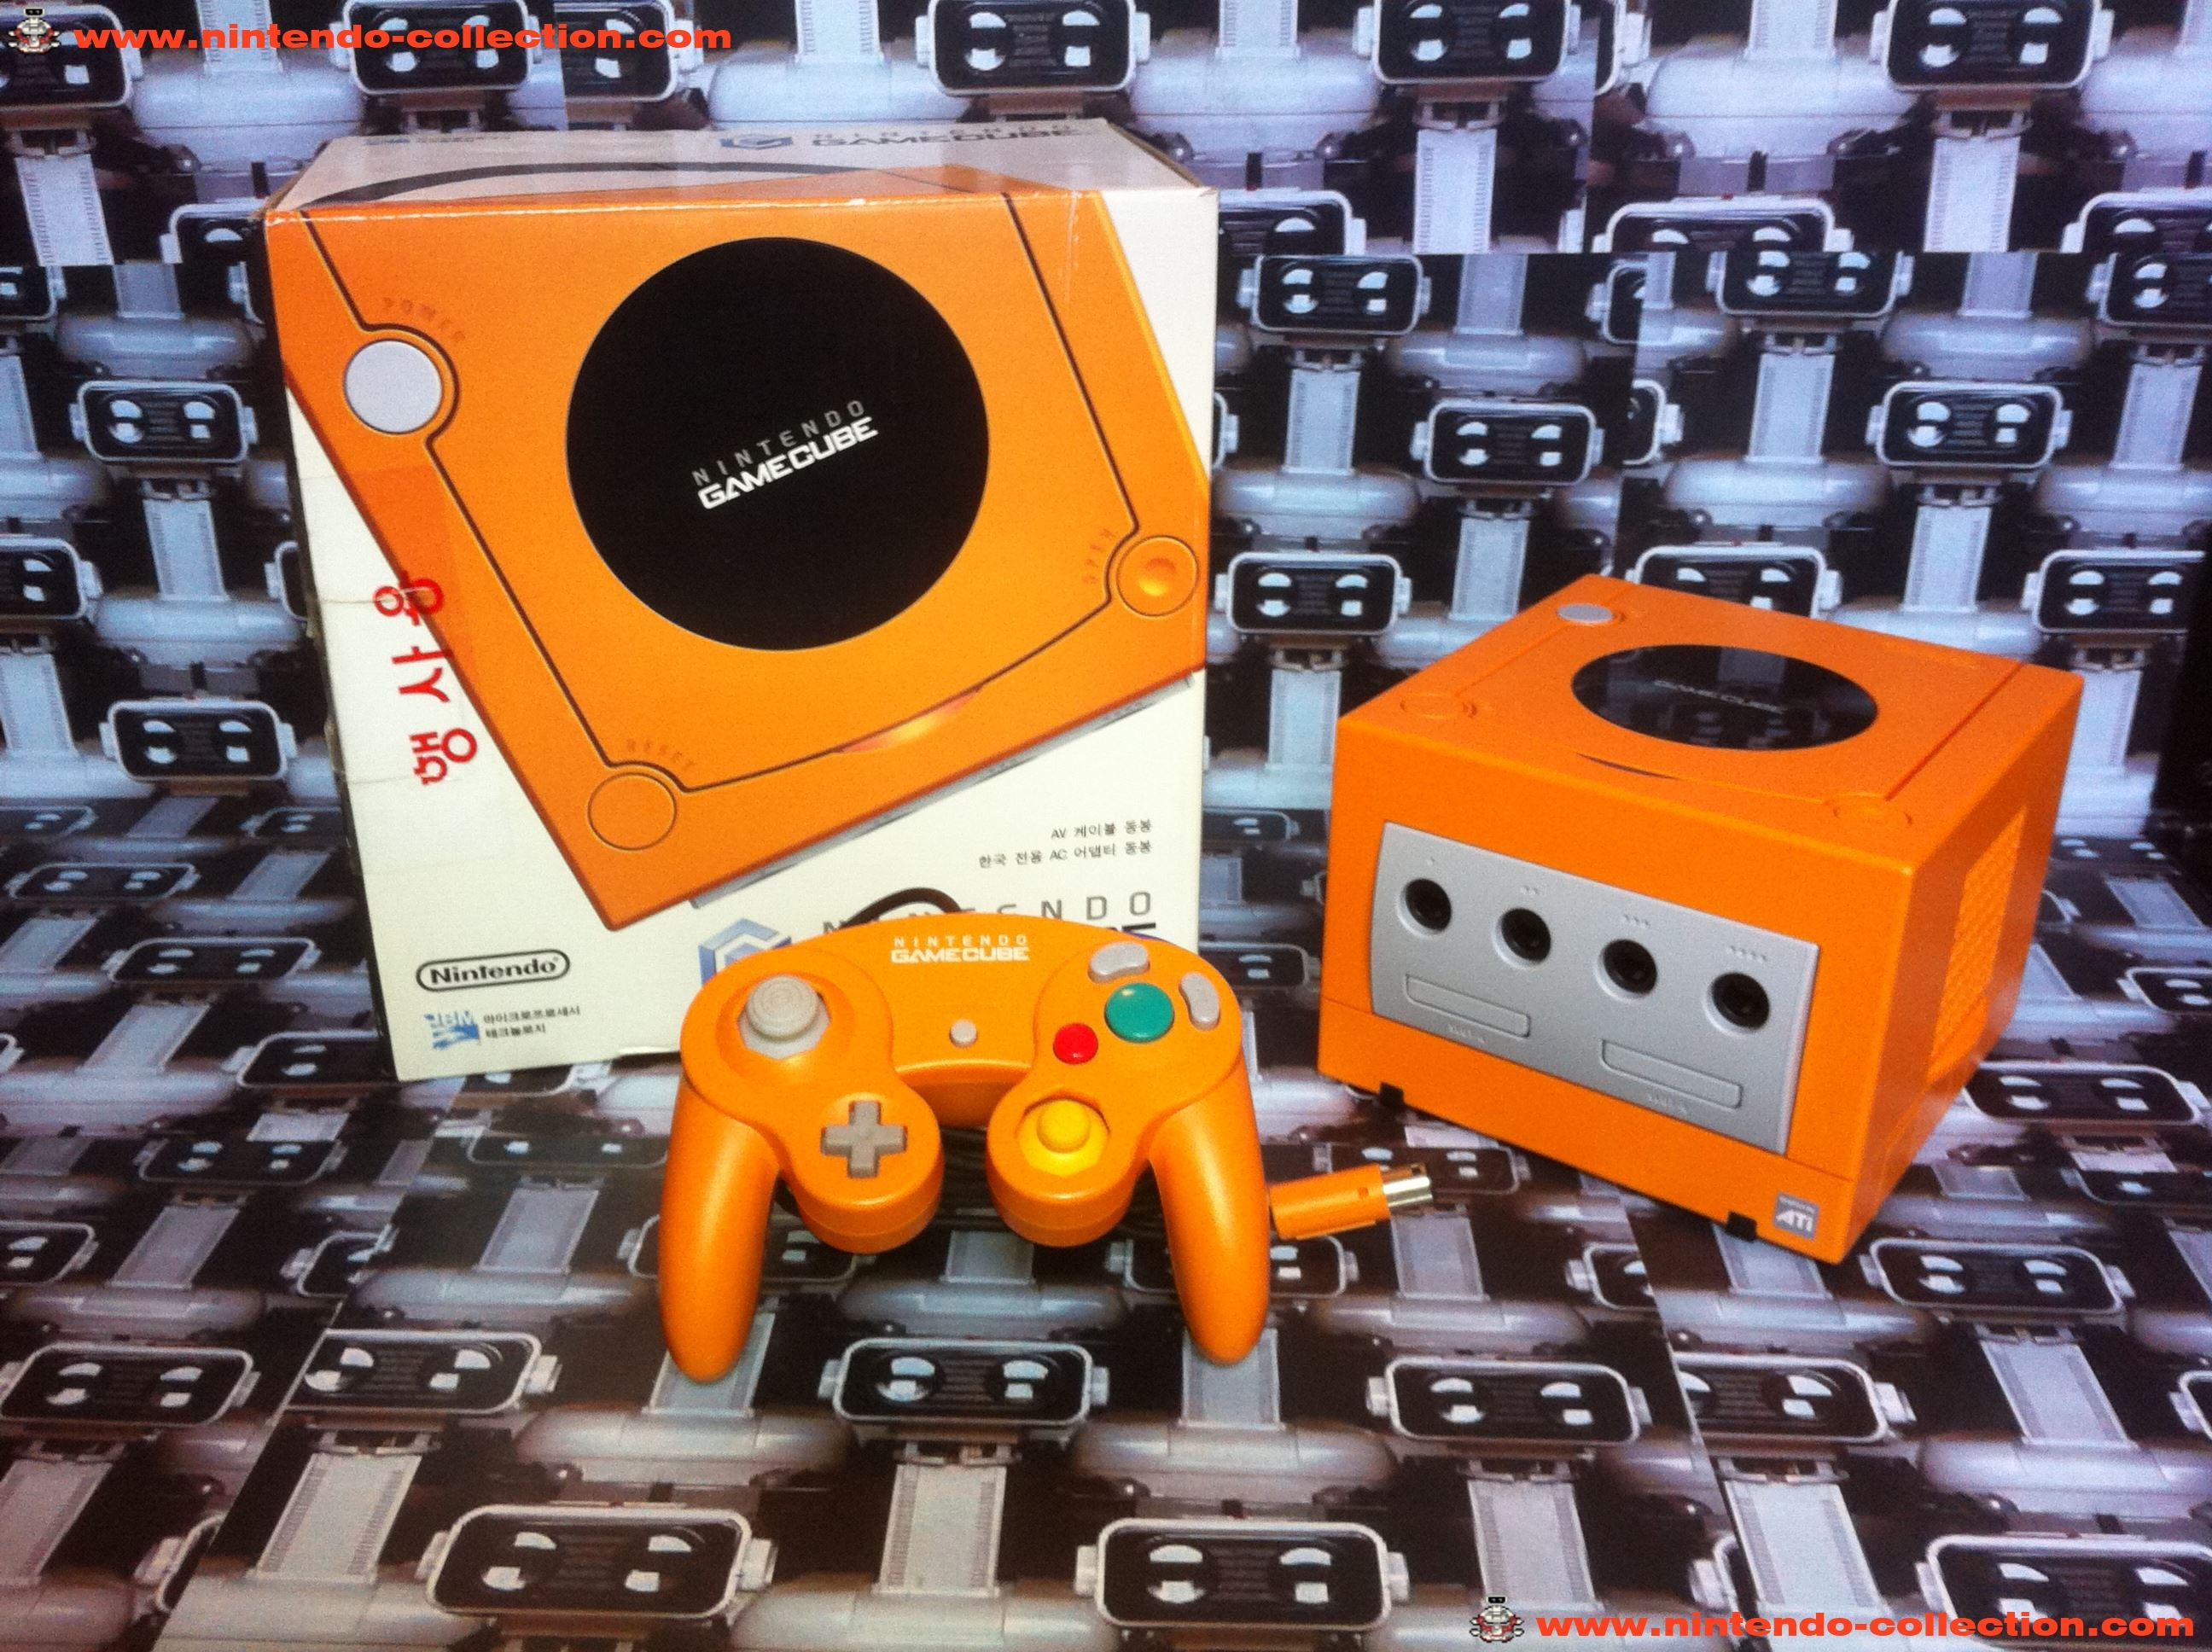 www.nintendo-collection.com - Gamecube Spice Orange Edition Korean Coreenne